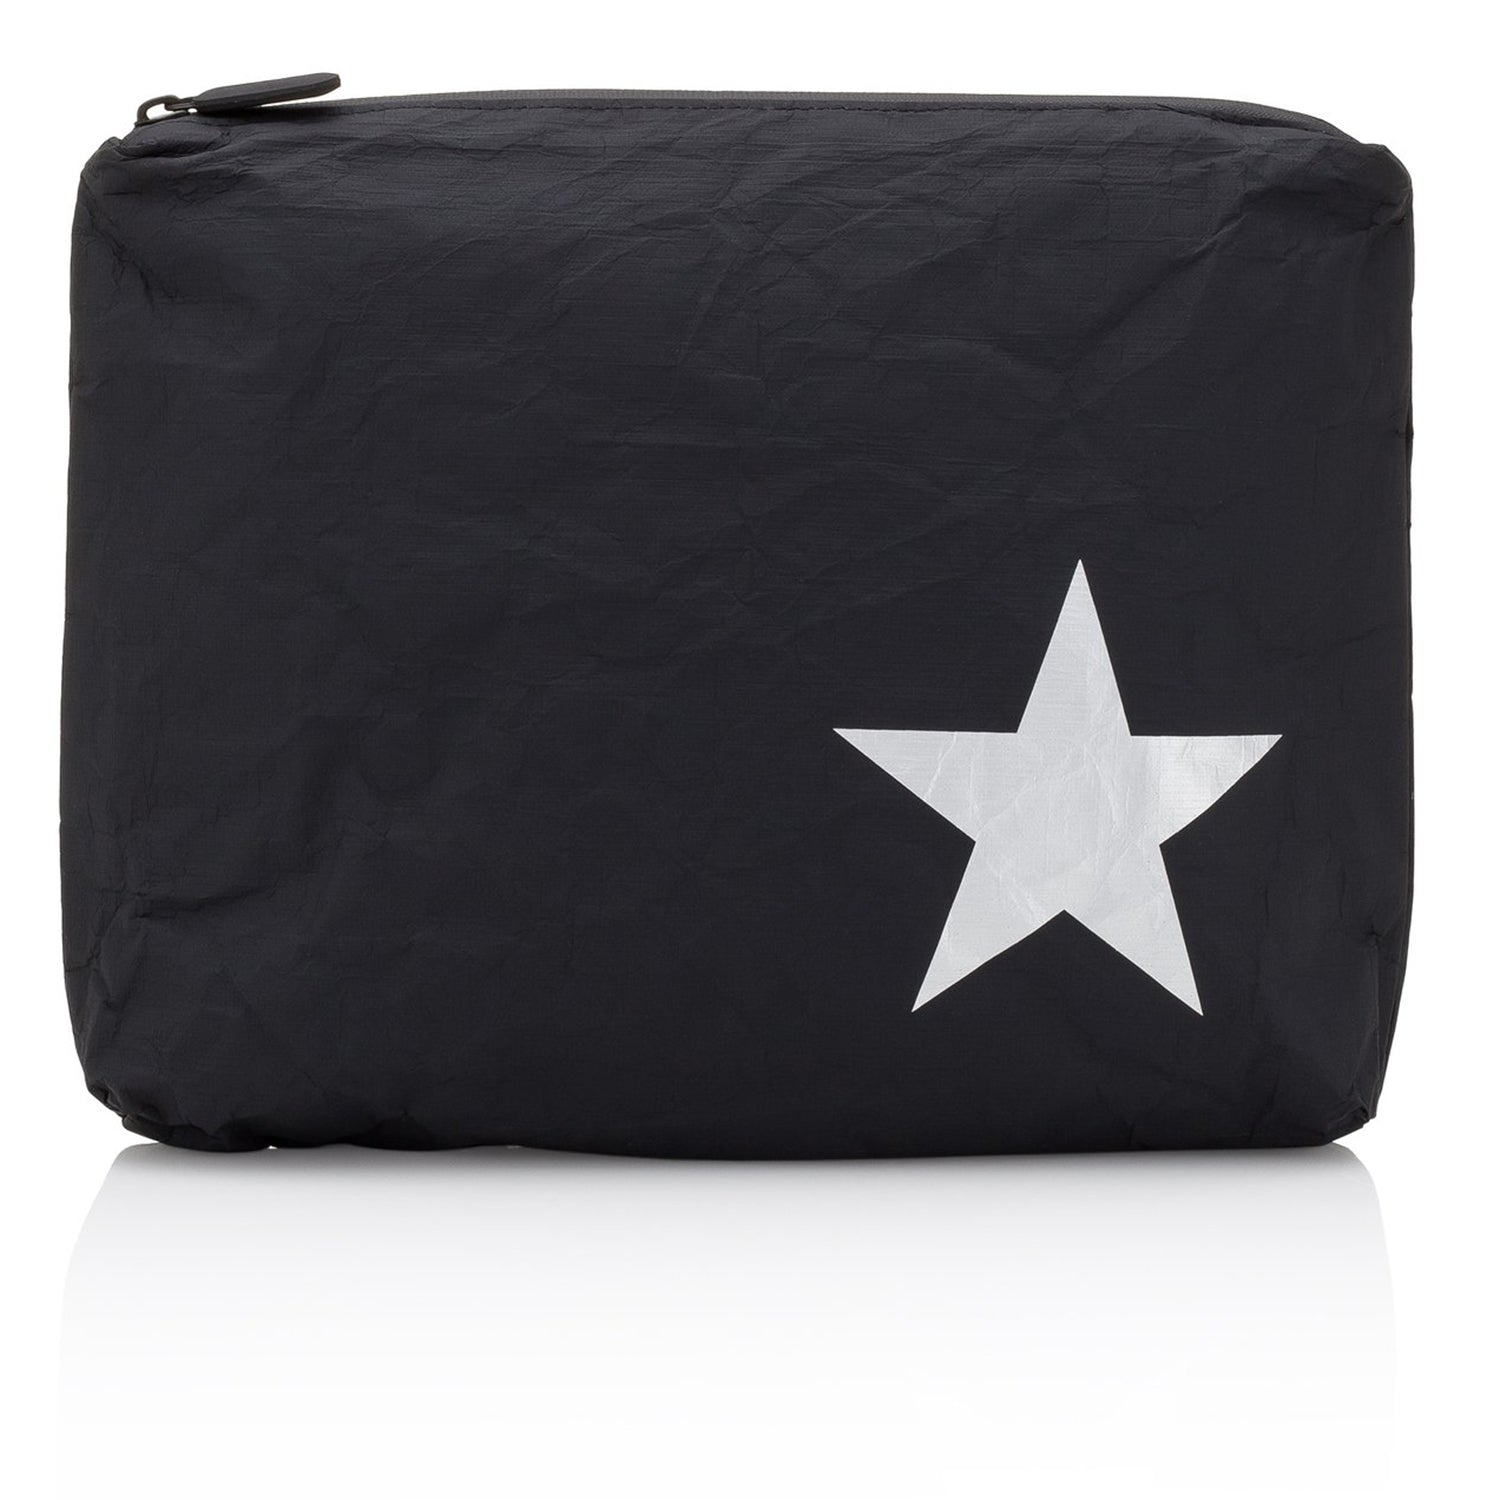 Makeup Pouch - Travel Pack - Medium Pack - Black with Silver Star